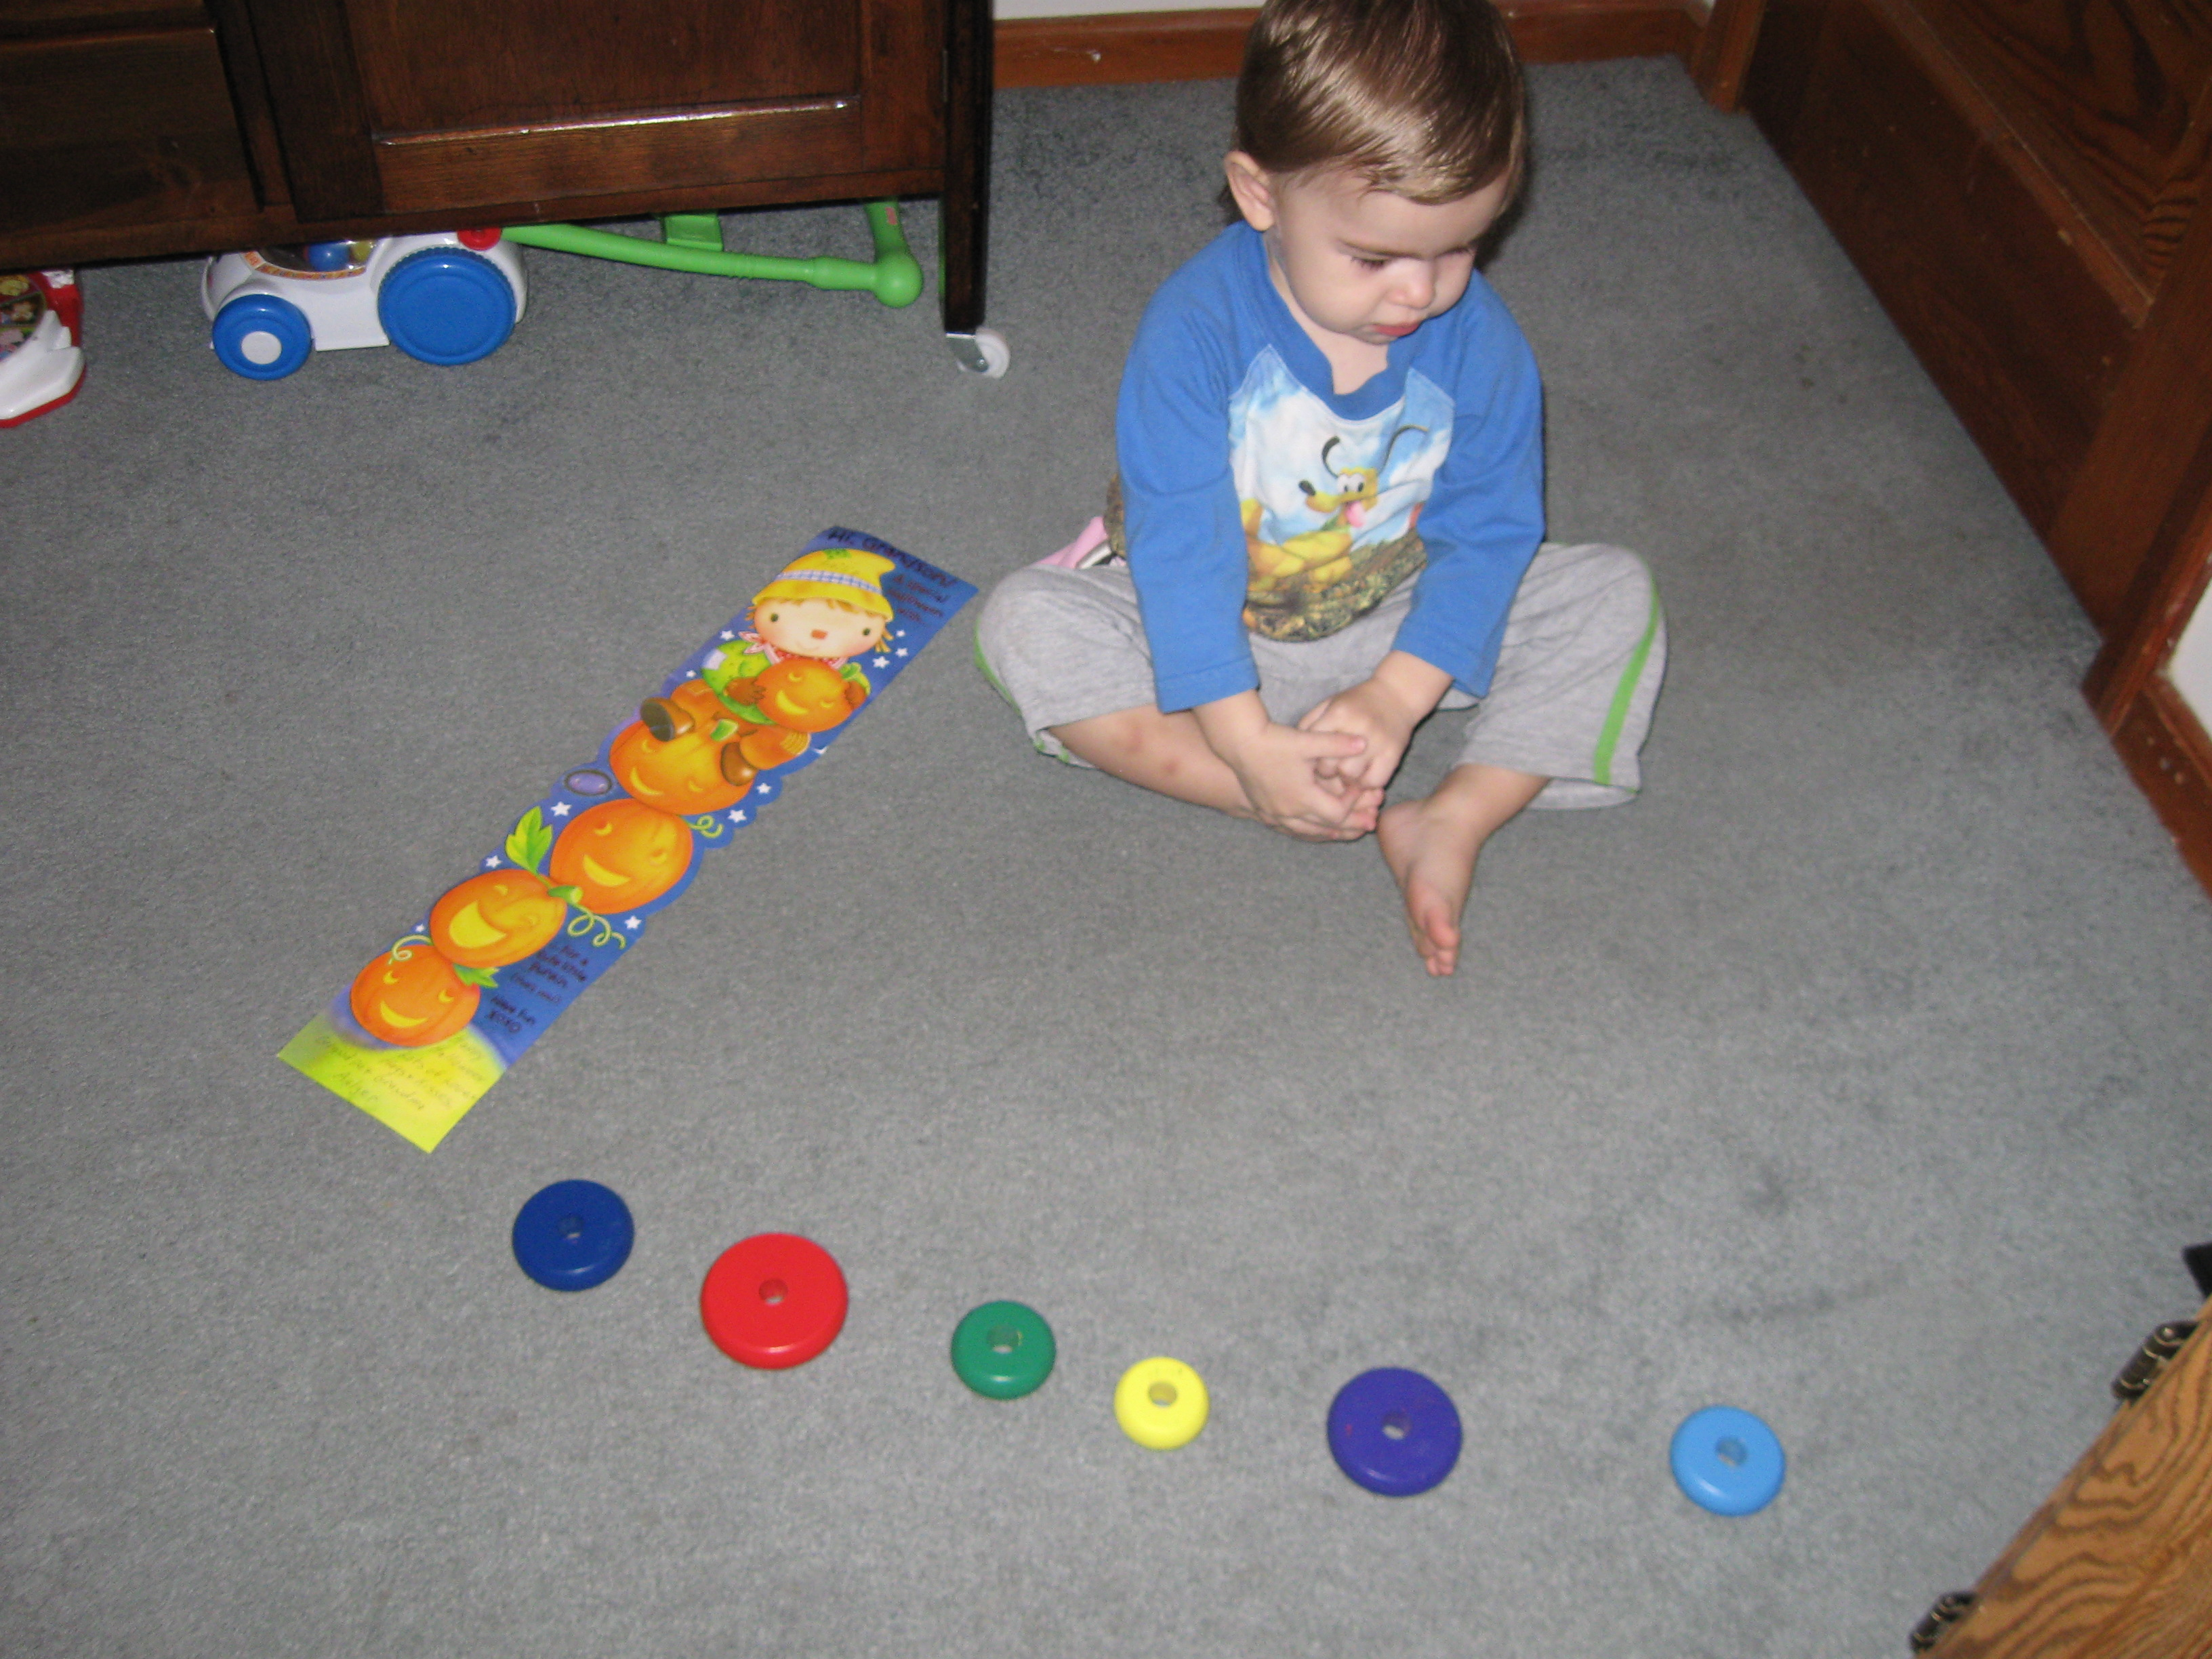 10 Toys For Autistic Boy : Line em up that cynking feeling